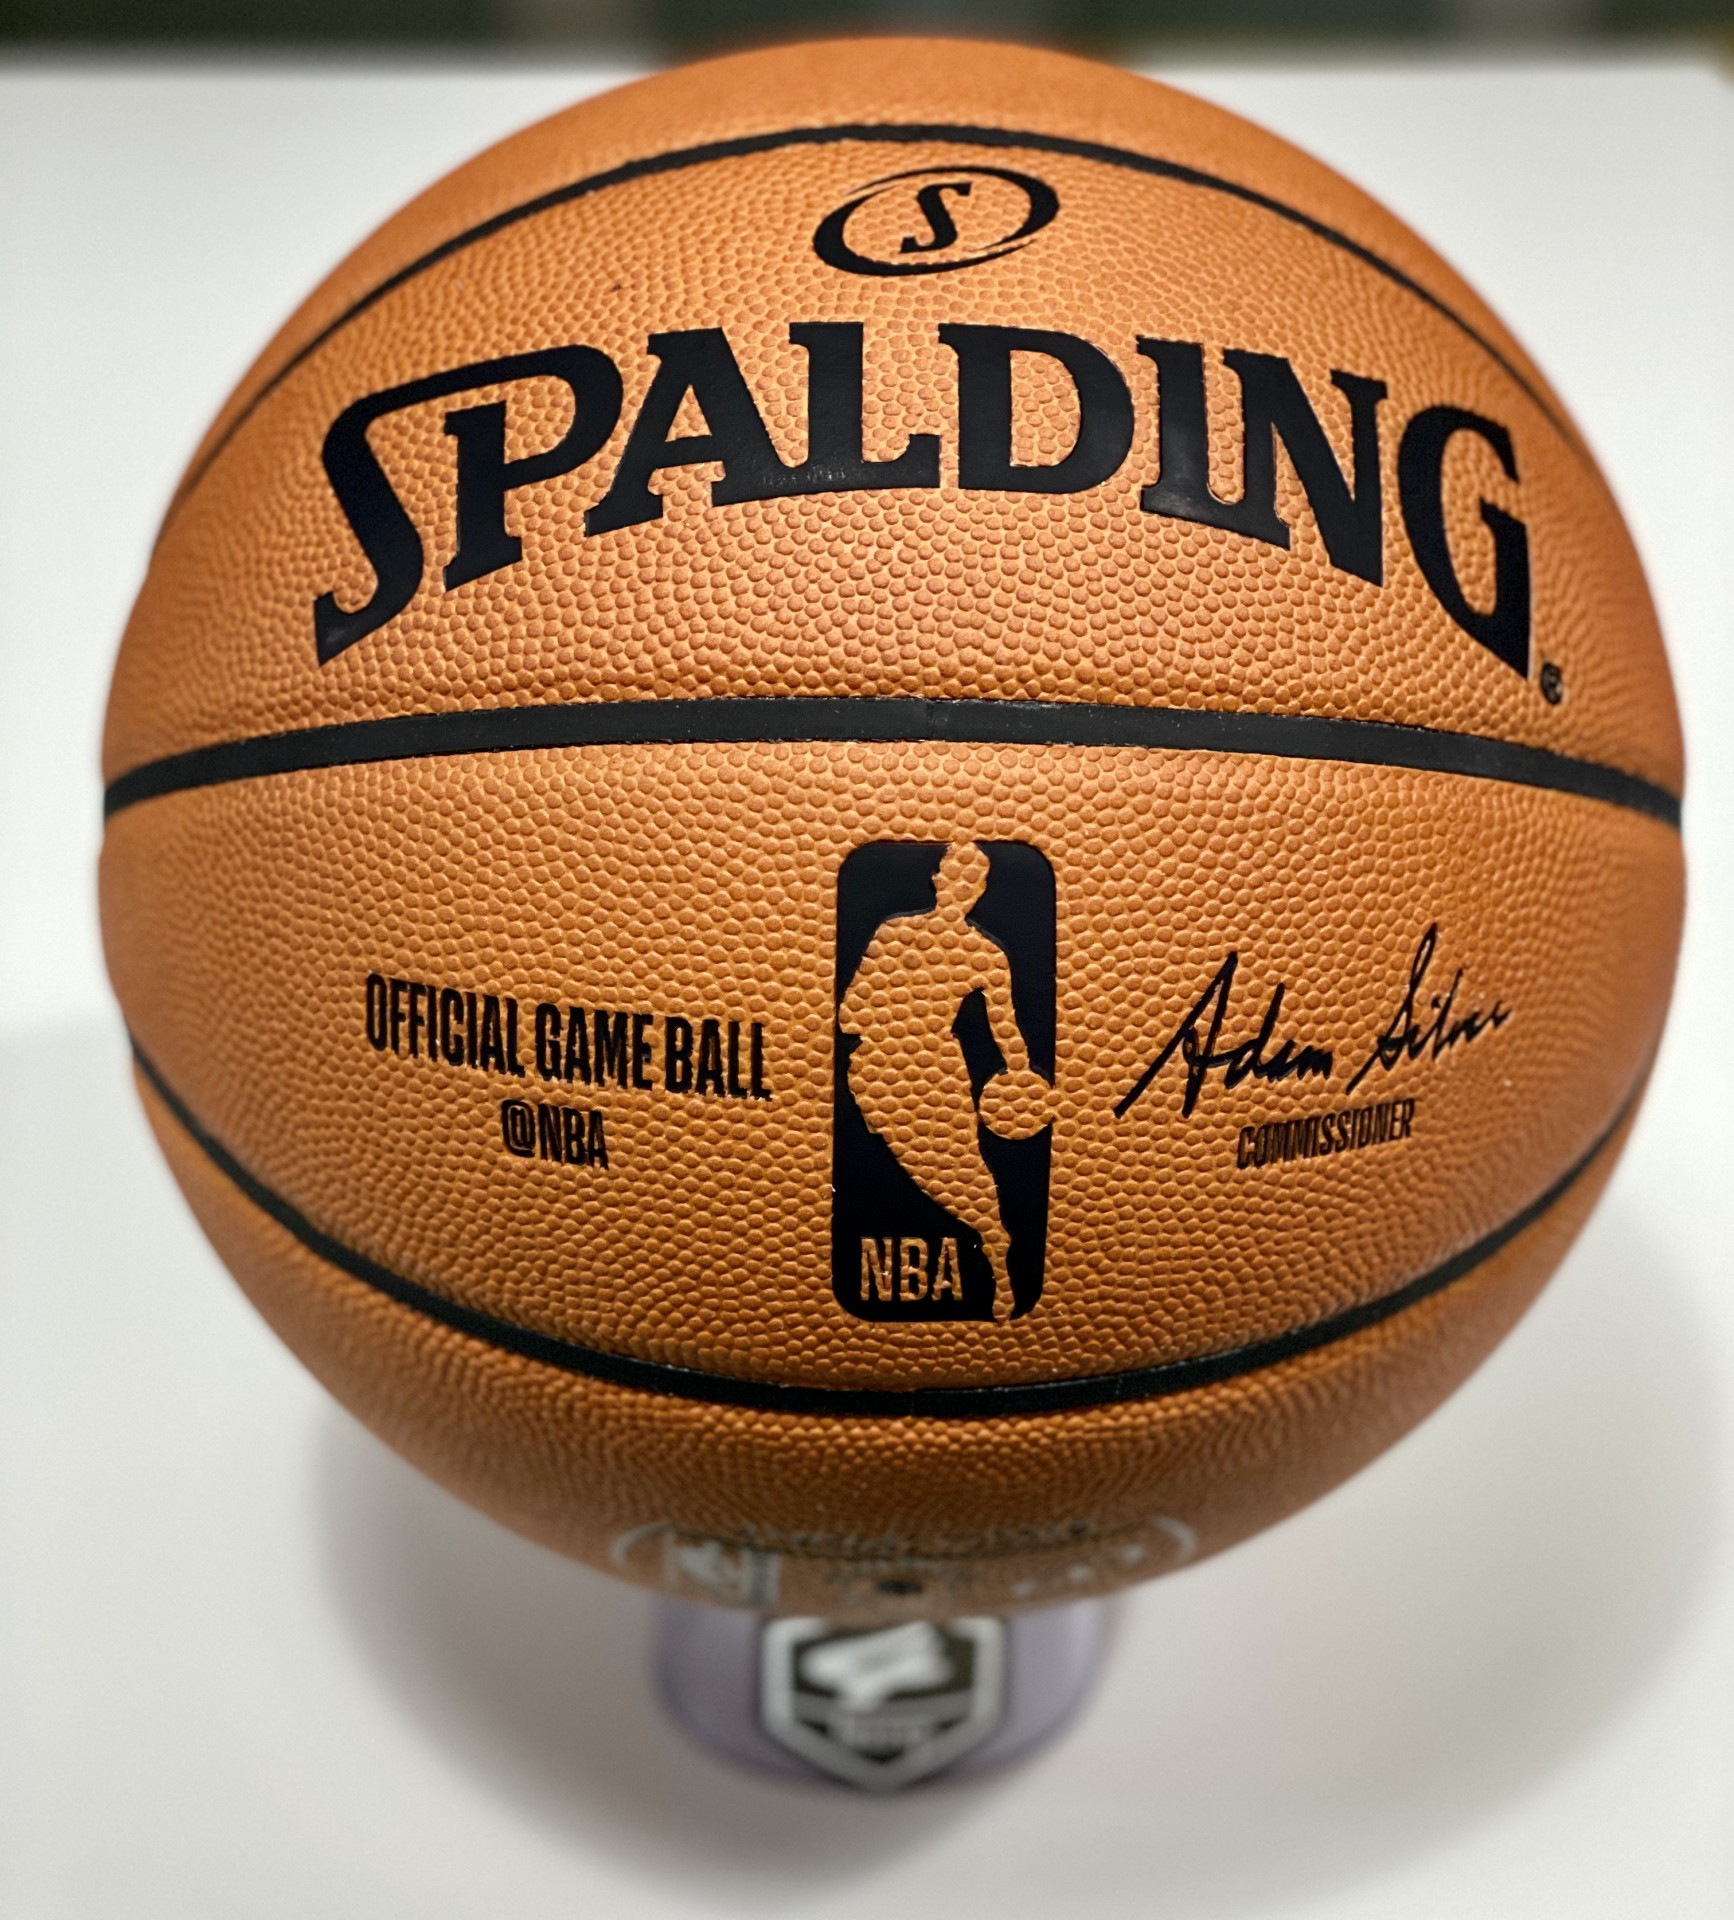 Spalding NBA Game Ball